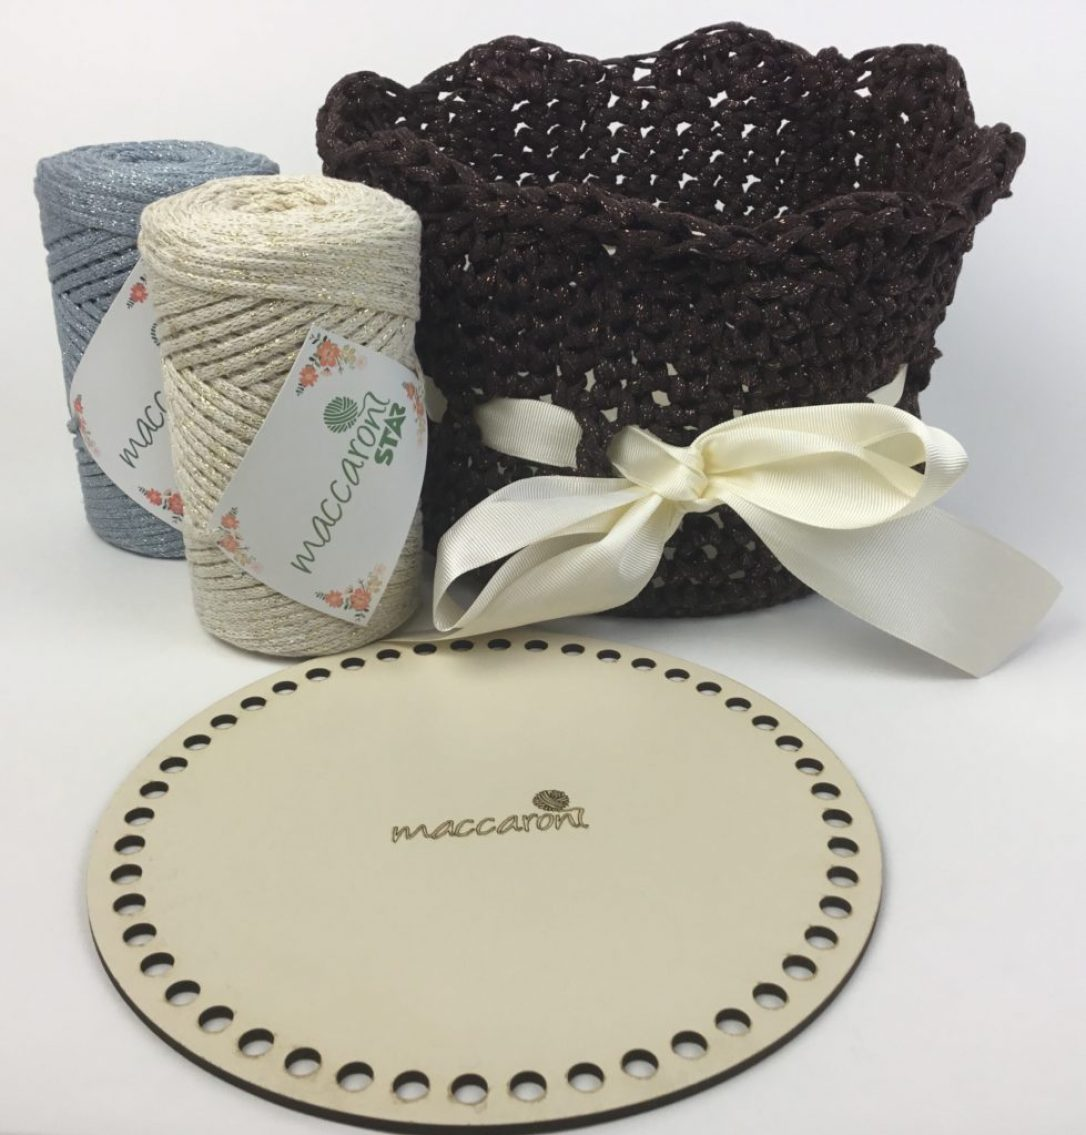 Crochet Basket Kit available in three colors with round wooden base, cotton yarn with lurex sparkle, and pattern.